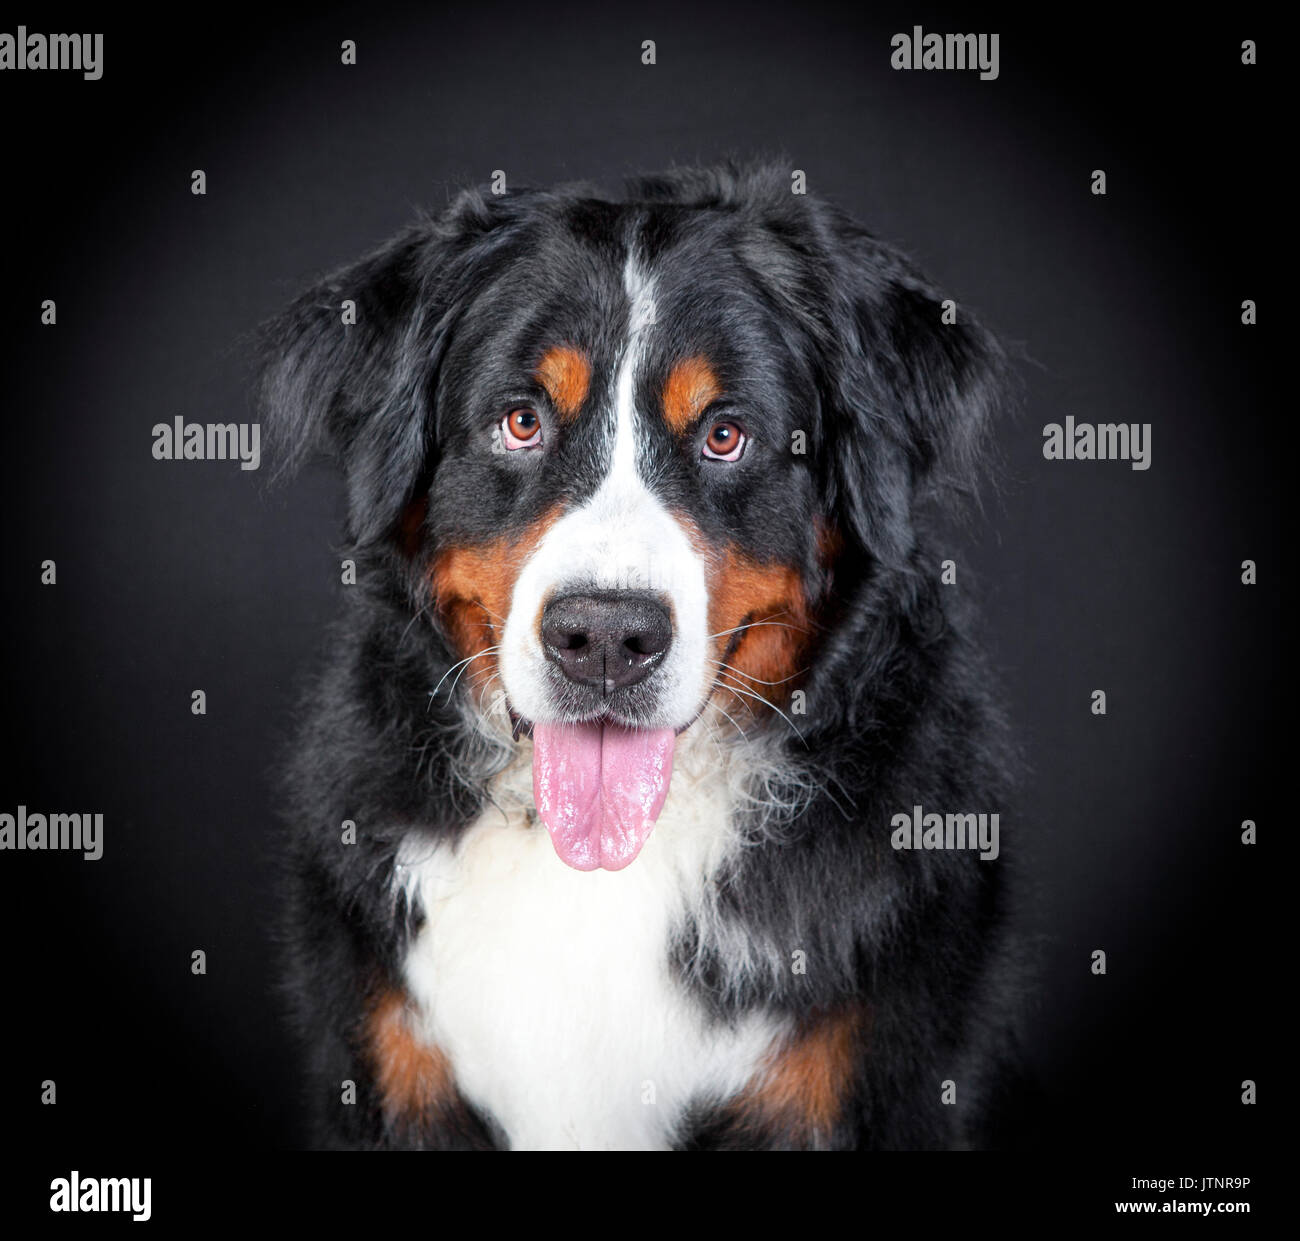 a Bernese Mountain dog sits and looks at the camera, background black - Stock Image